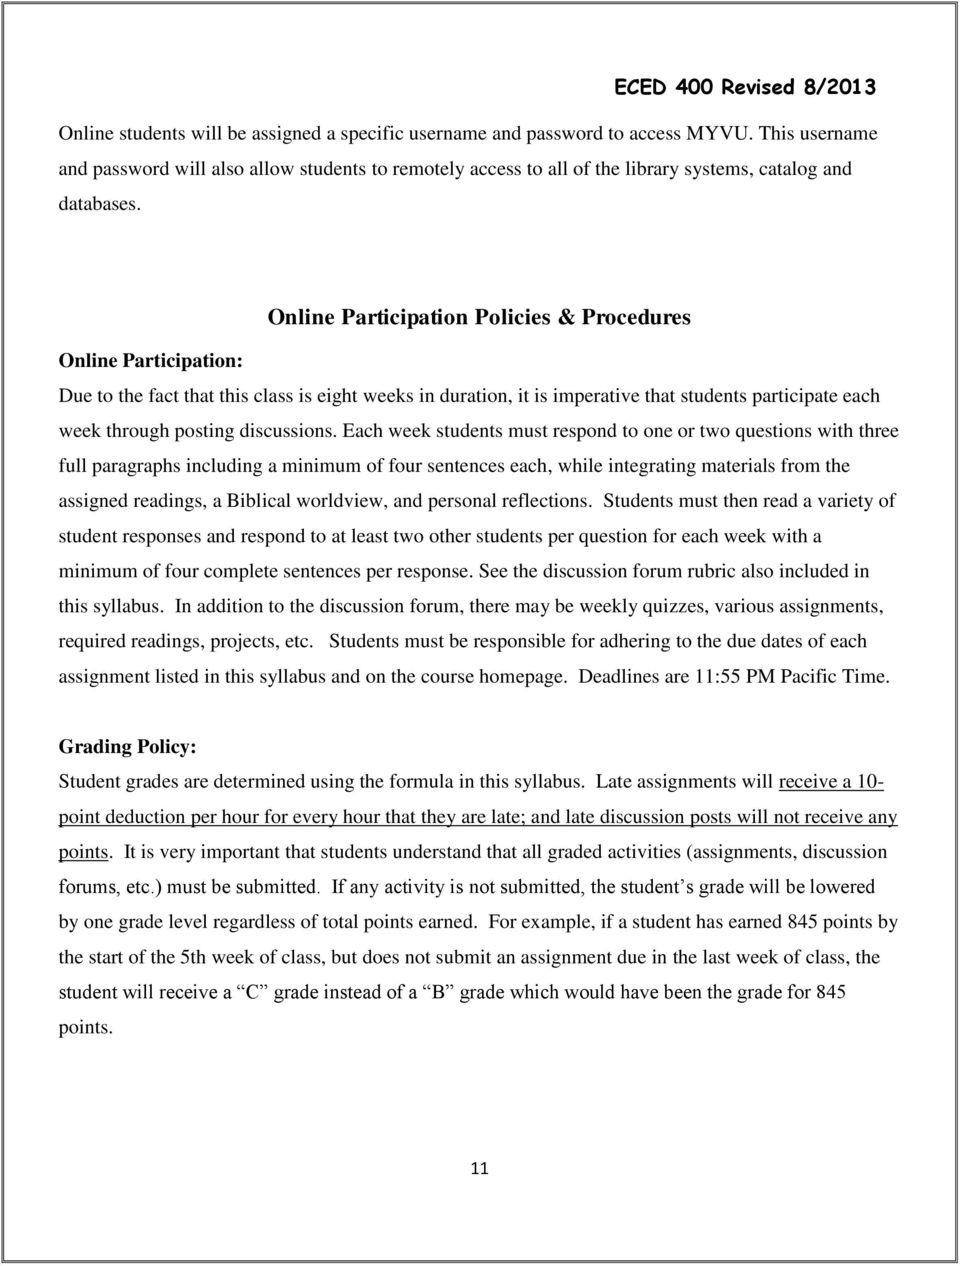 Online Participation Policies & Procedures Online Participation: Due to the fact that this class is eight weeks in duration, it is imperative that students participate each week through posting